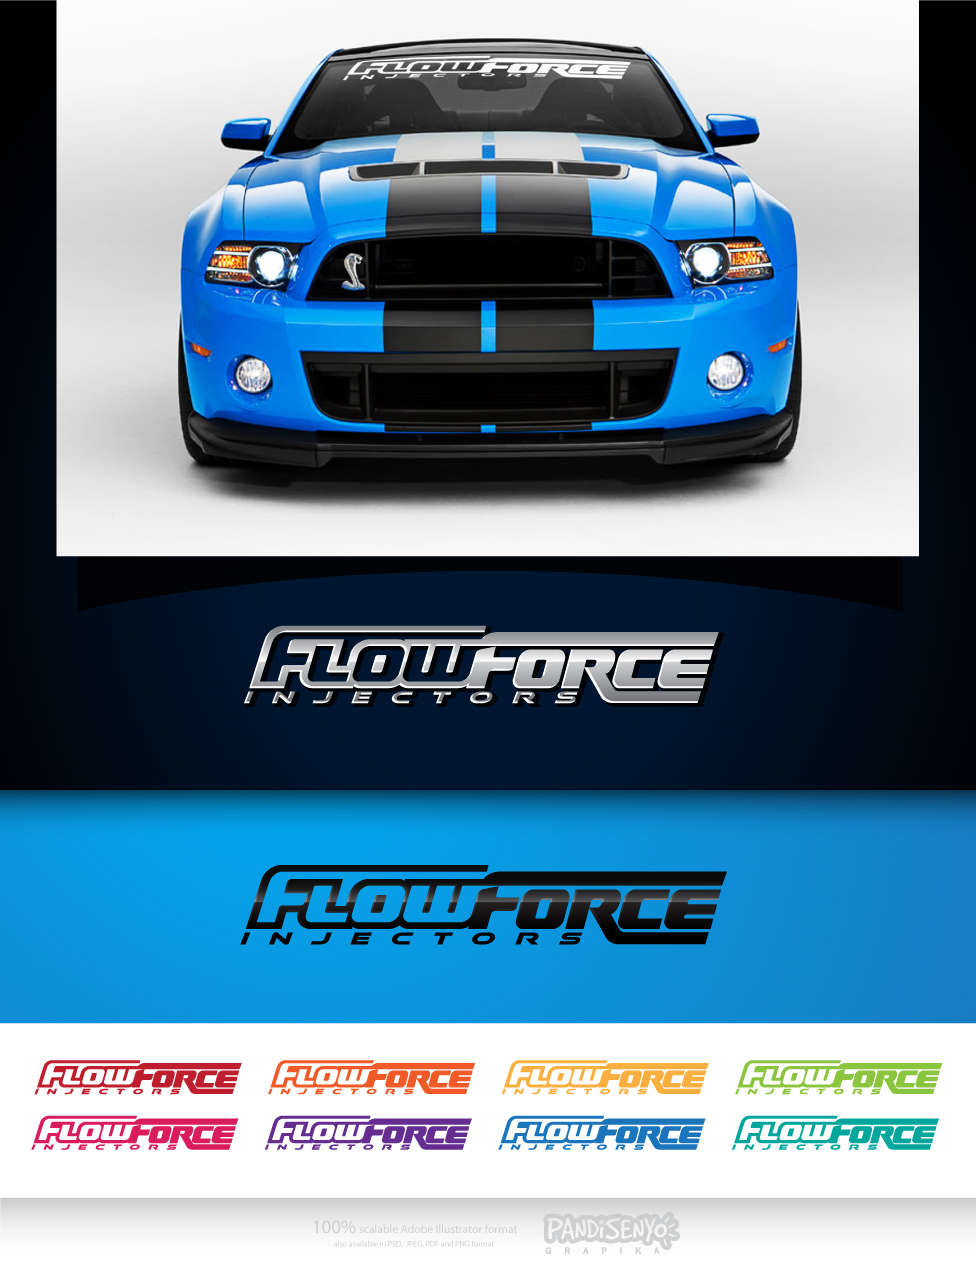 Logo Design by pandisenyo - Entry No. 55 in the Logo Design Contest Fun Logo Design for Flow Force Injectors.